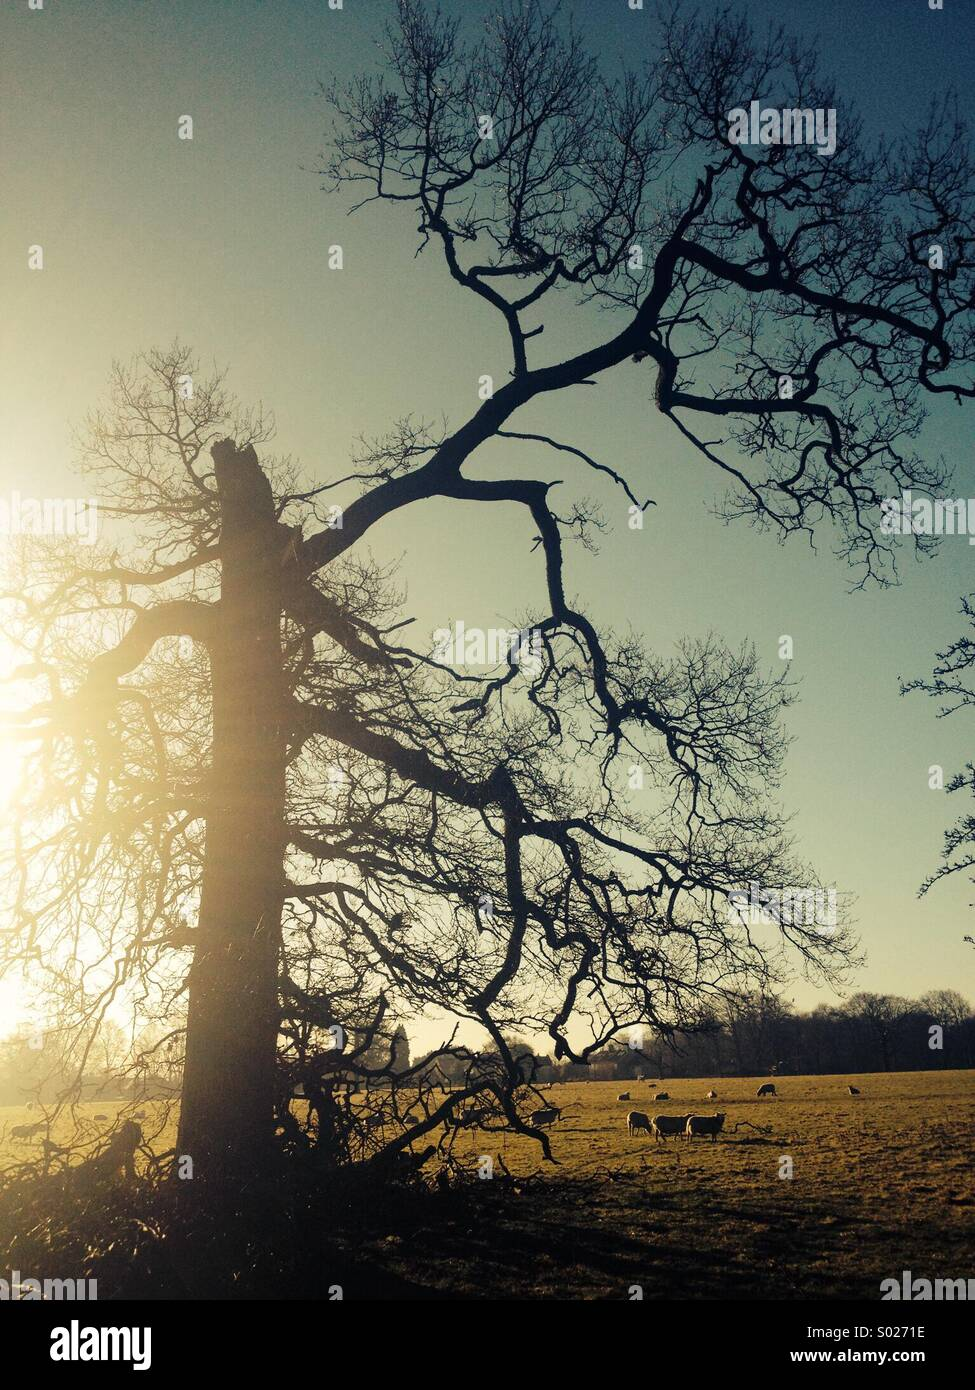 Broken tree - Stock Image